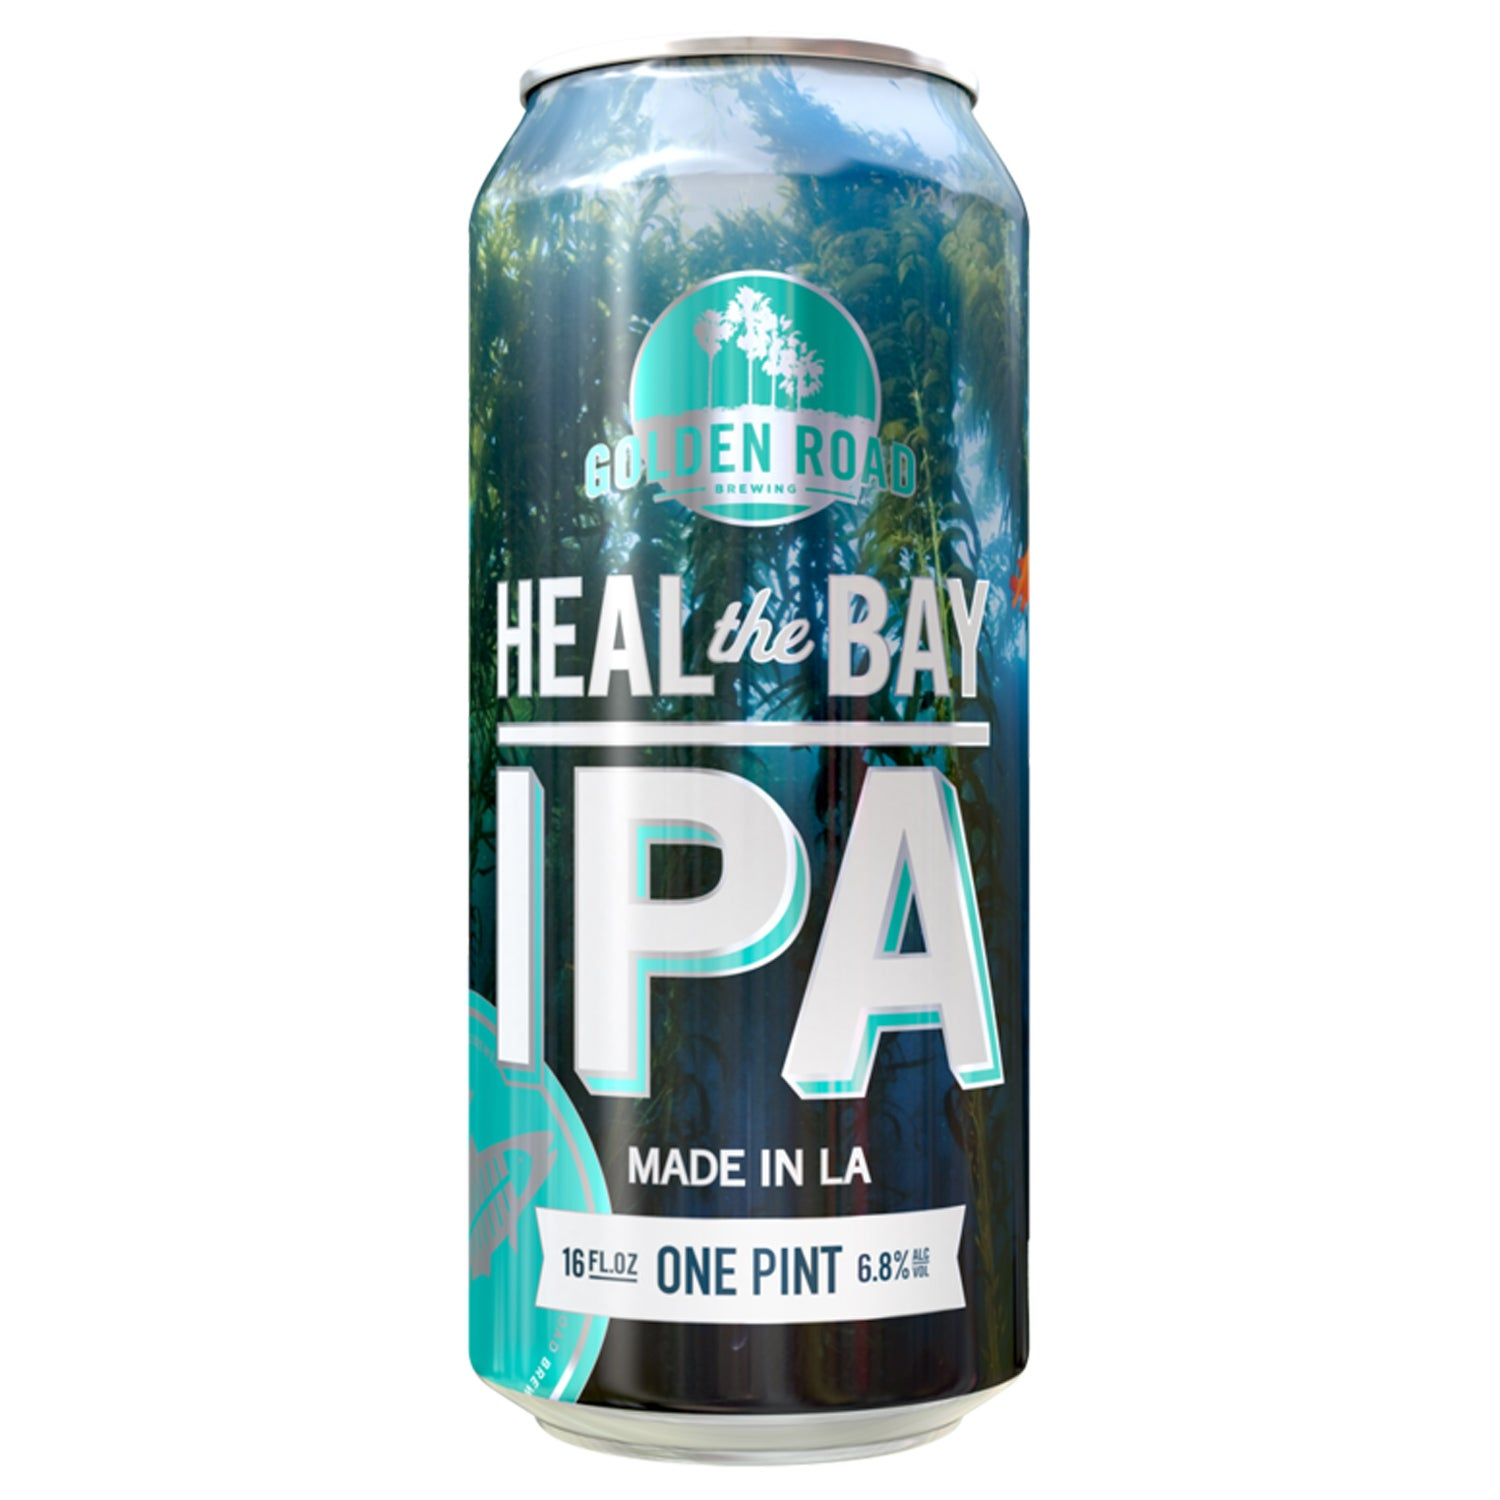 golden road brewing heal the bay ipa outside canned beer fall hiking or camping